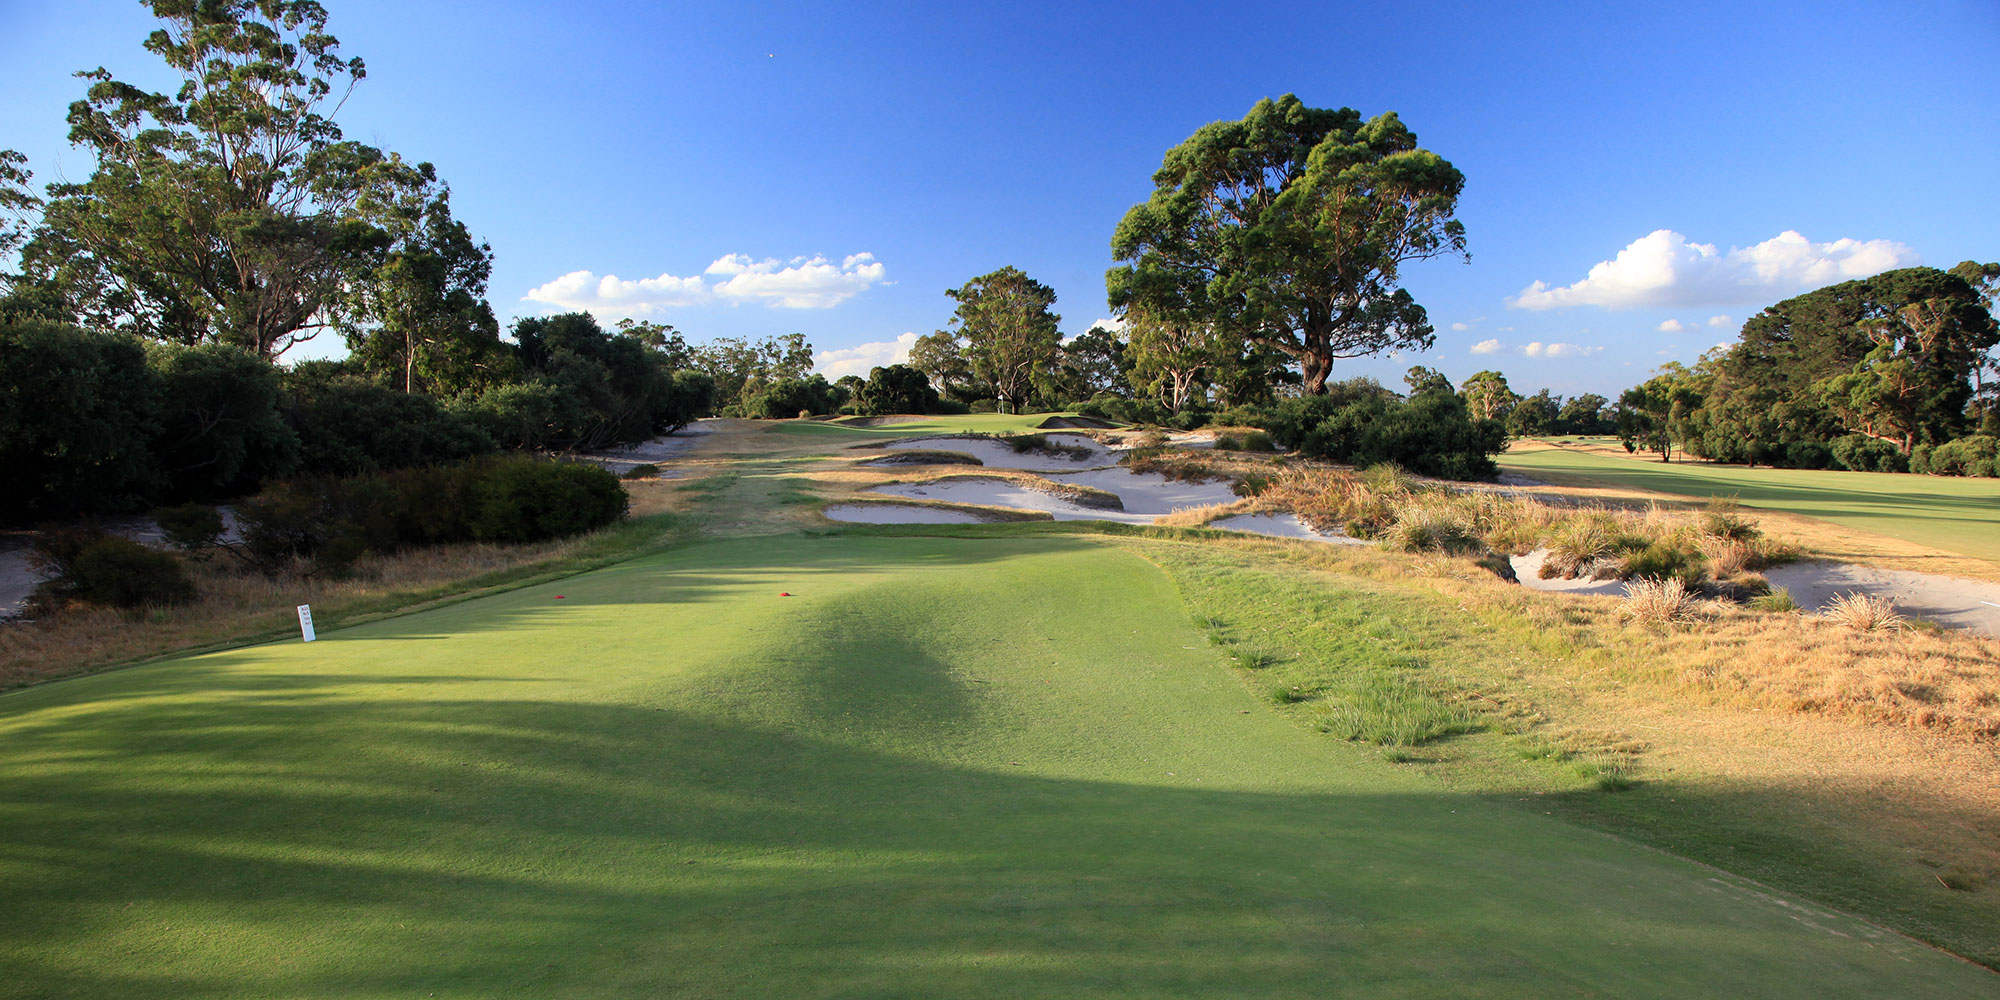 Melbourne Sandbelt Tour | Dec '20 & January '21 dates available | 4 nights, 5 games